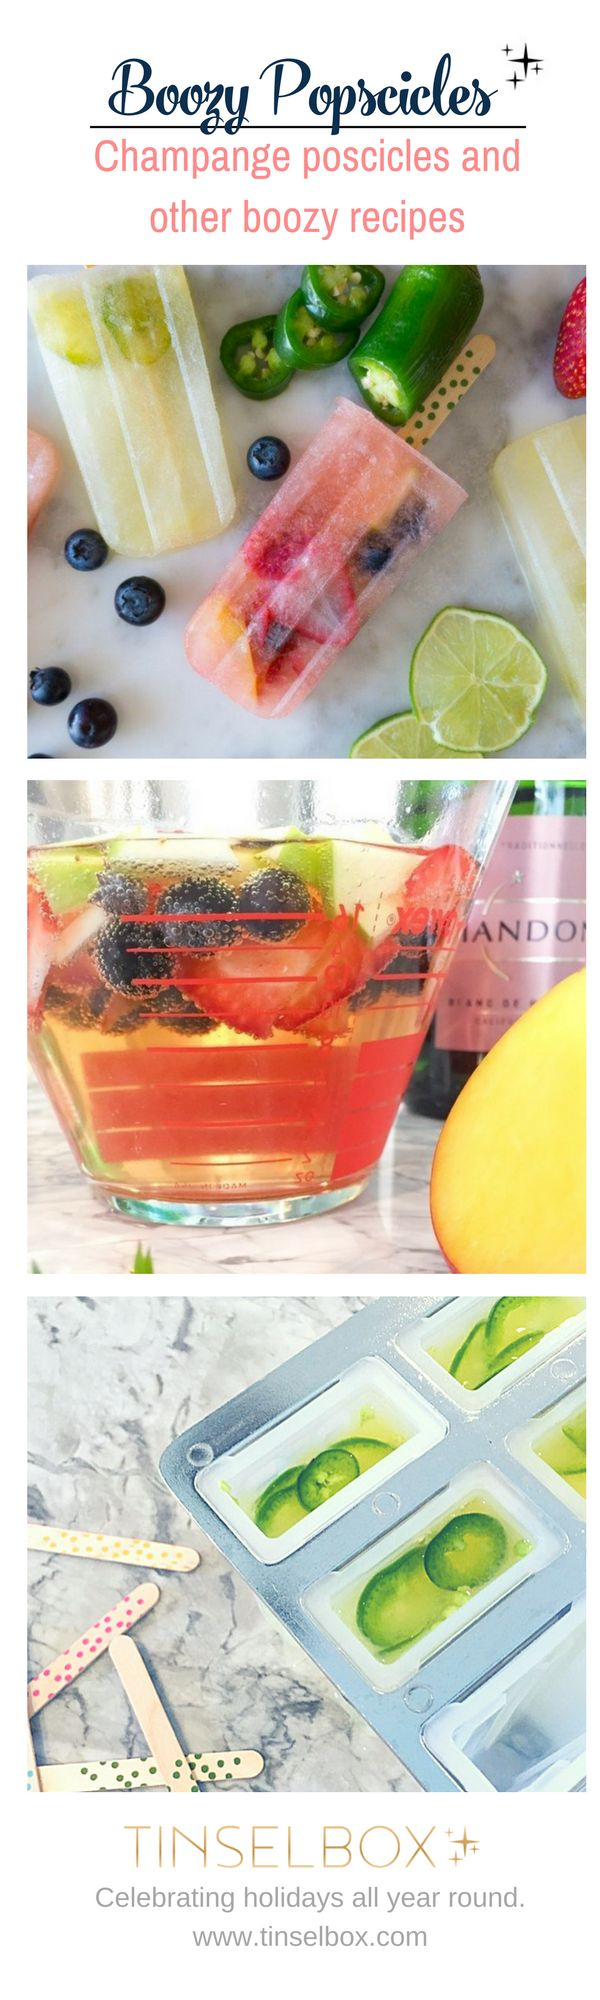 Nothing rings in the summertime like champagne popsicles and other fun boozy recipes, so I'm here to give you some yummy adult recipes for these refreshing treats! Who doesn't LOVE…